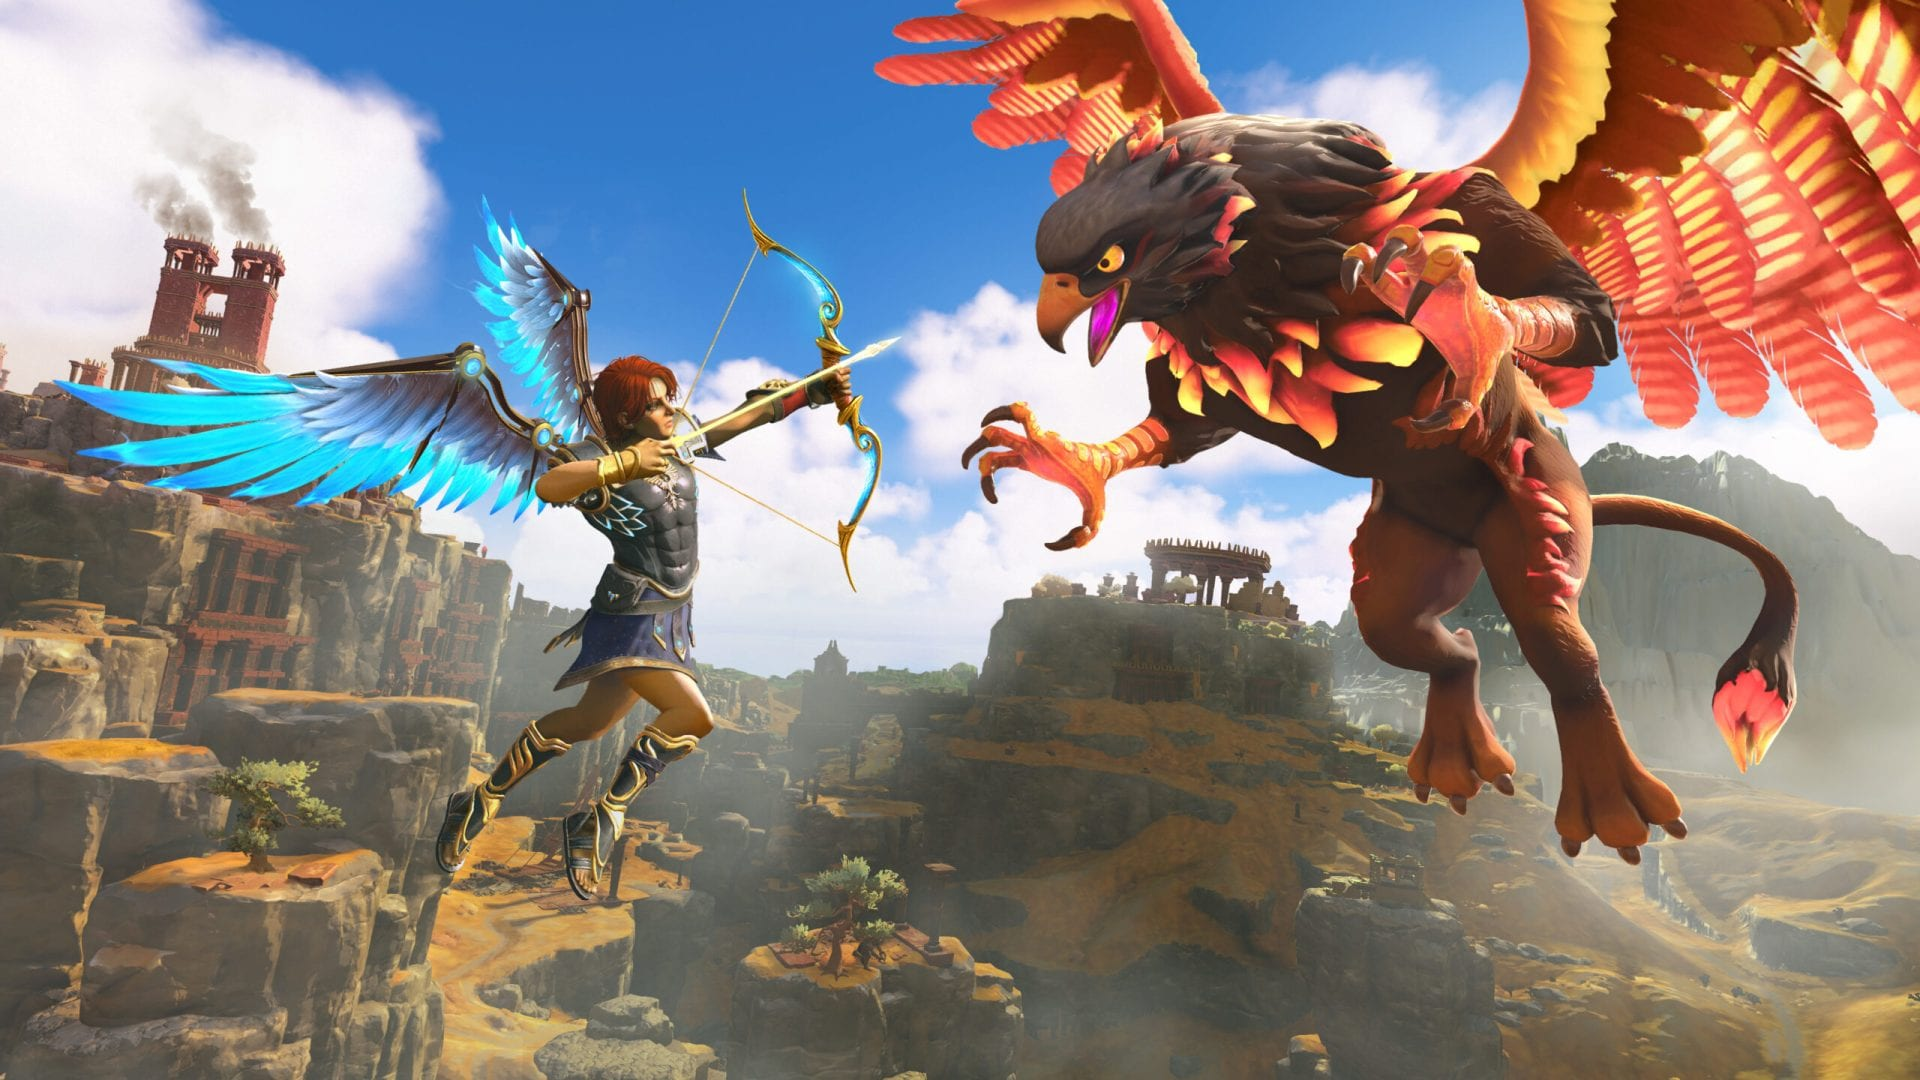 First Immortals Fenyx Rising Nintendo Swap Footage Reveals Patchy Efficiency 1